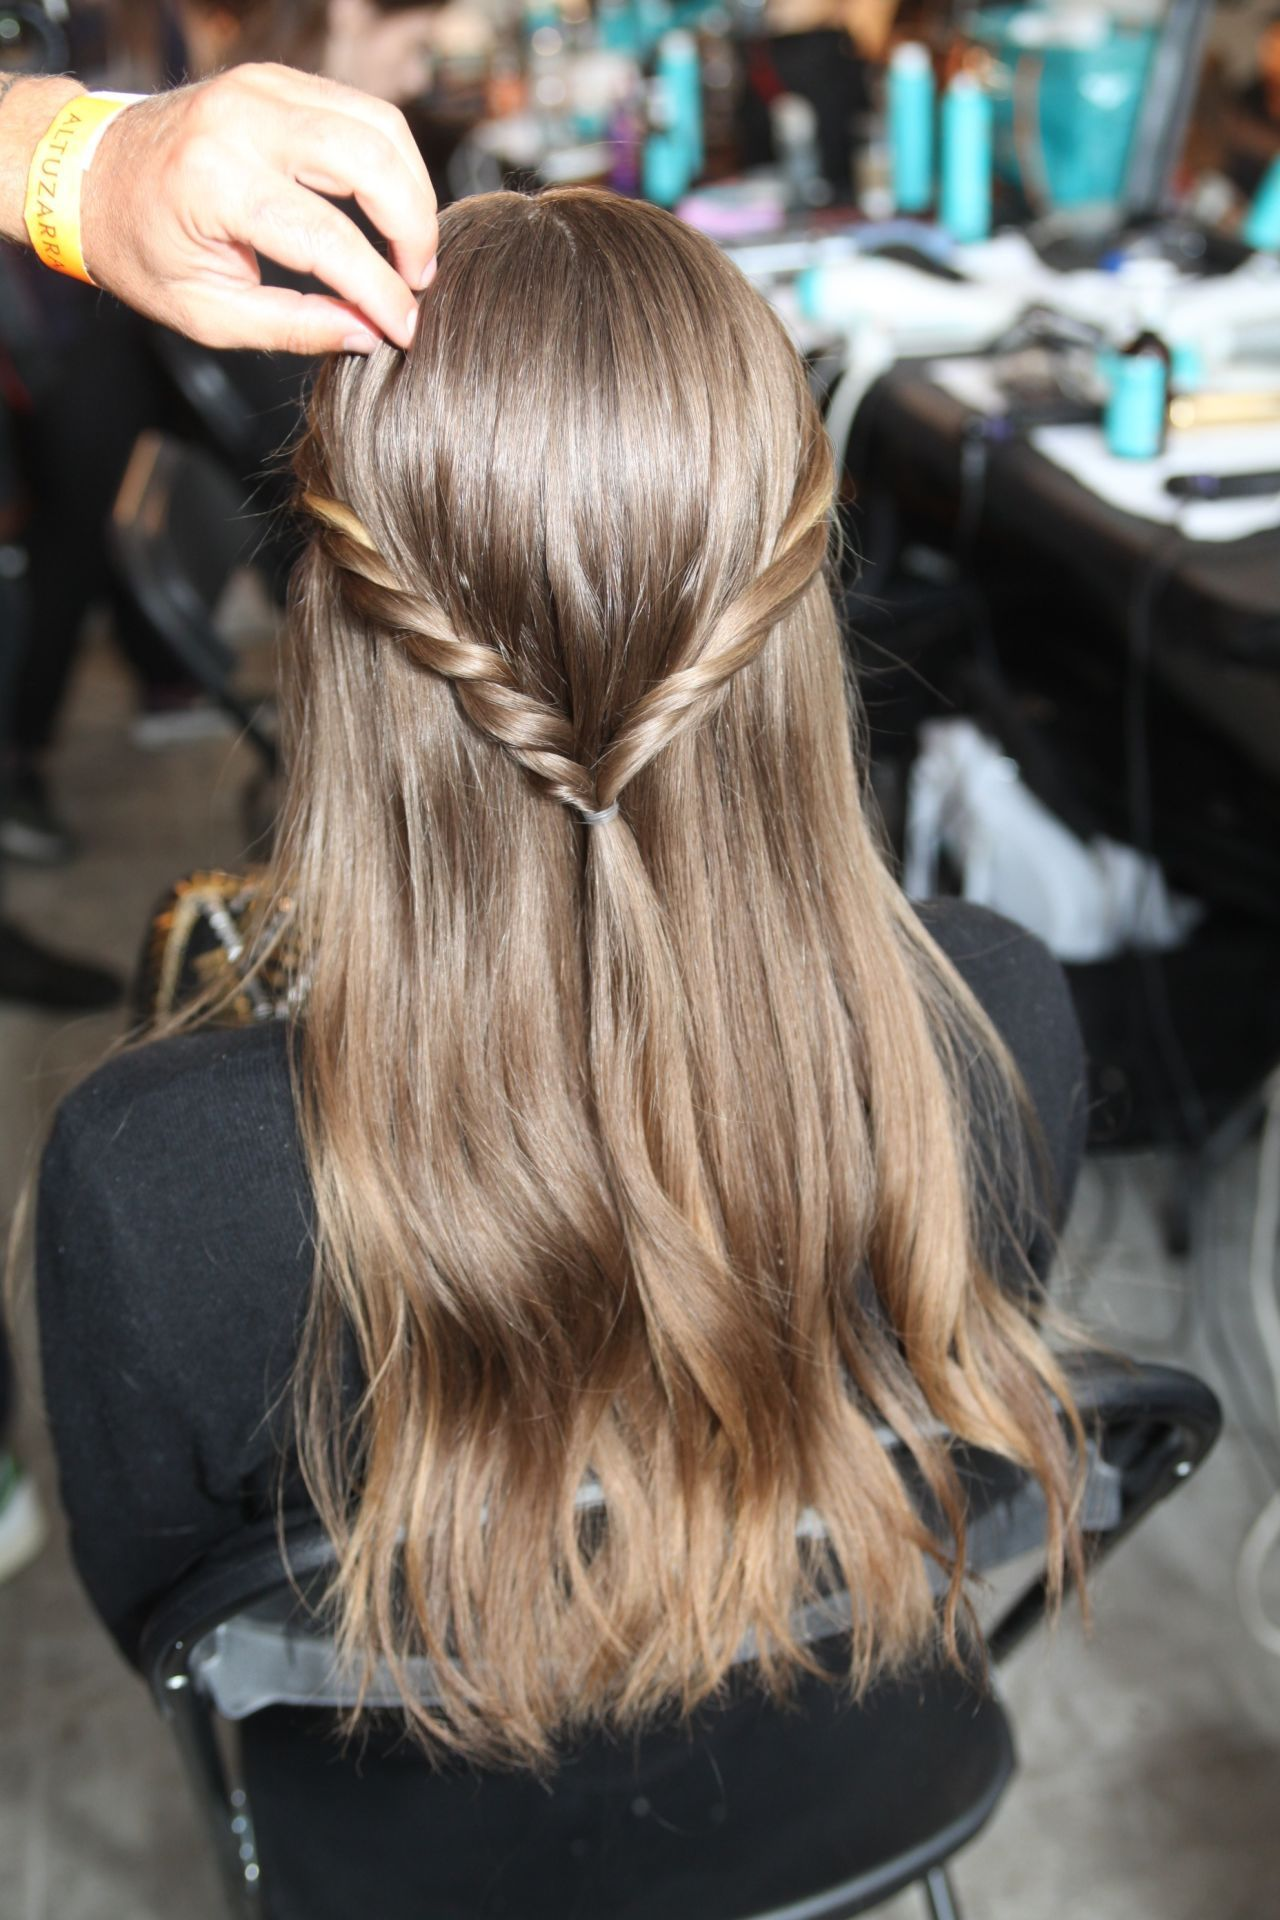 10 Breathtaking Braids You Need in Your Life Right Now forecast